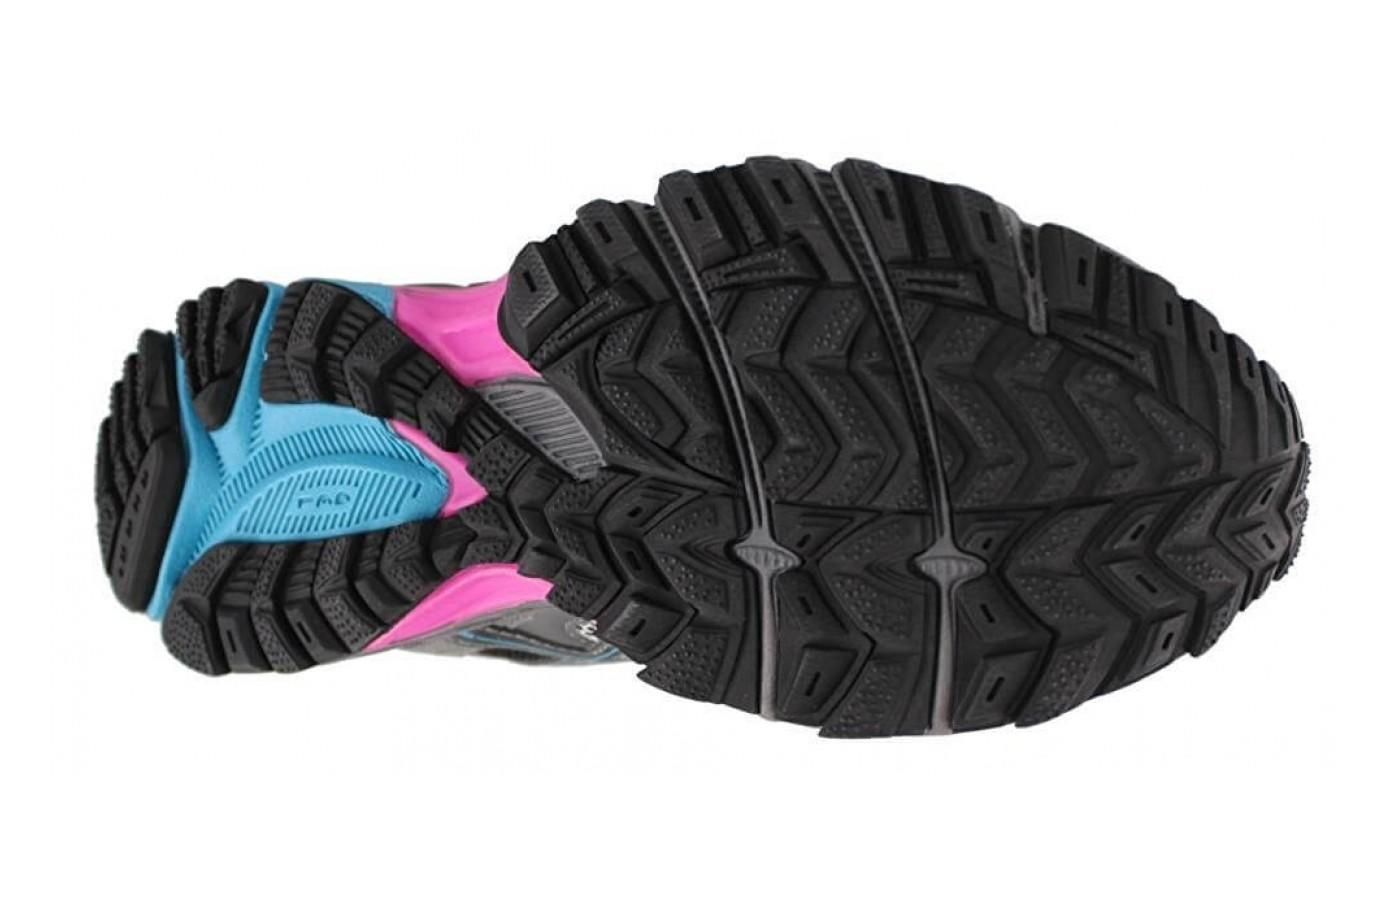 The impressive grippy AHAR outsole lugs provide tractionand the flex grooves assist with flexibility  for nimbler trail adventures